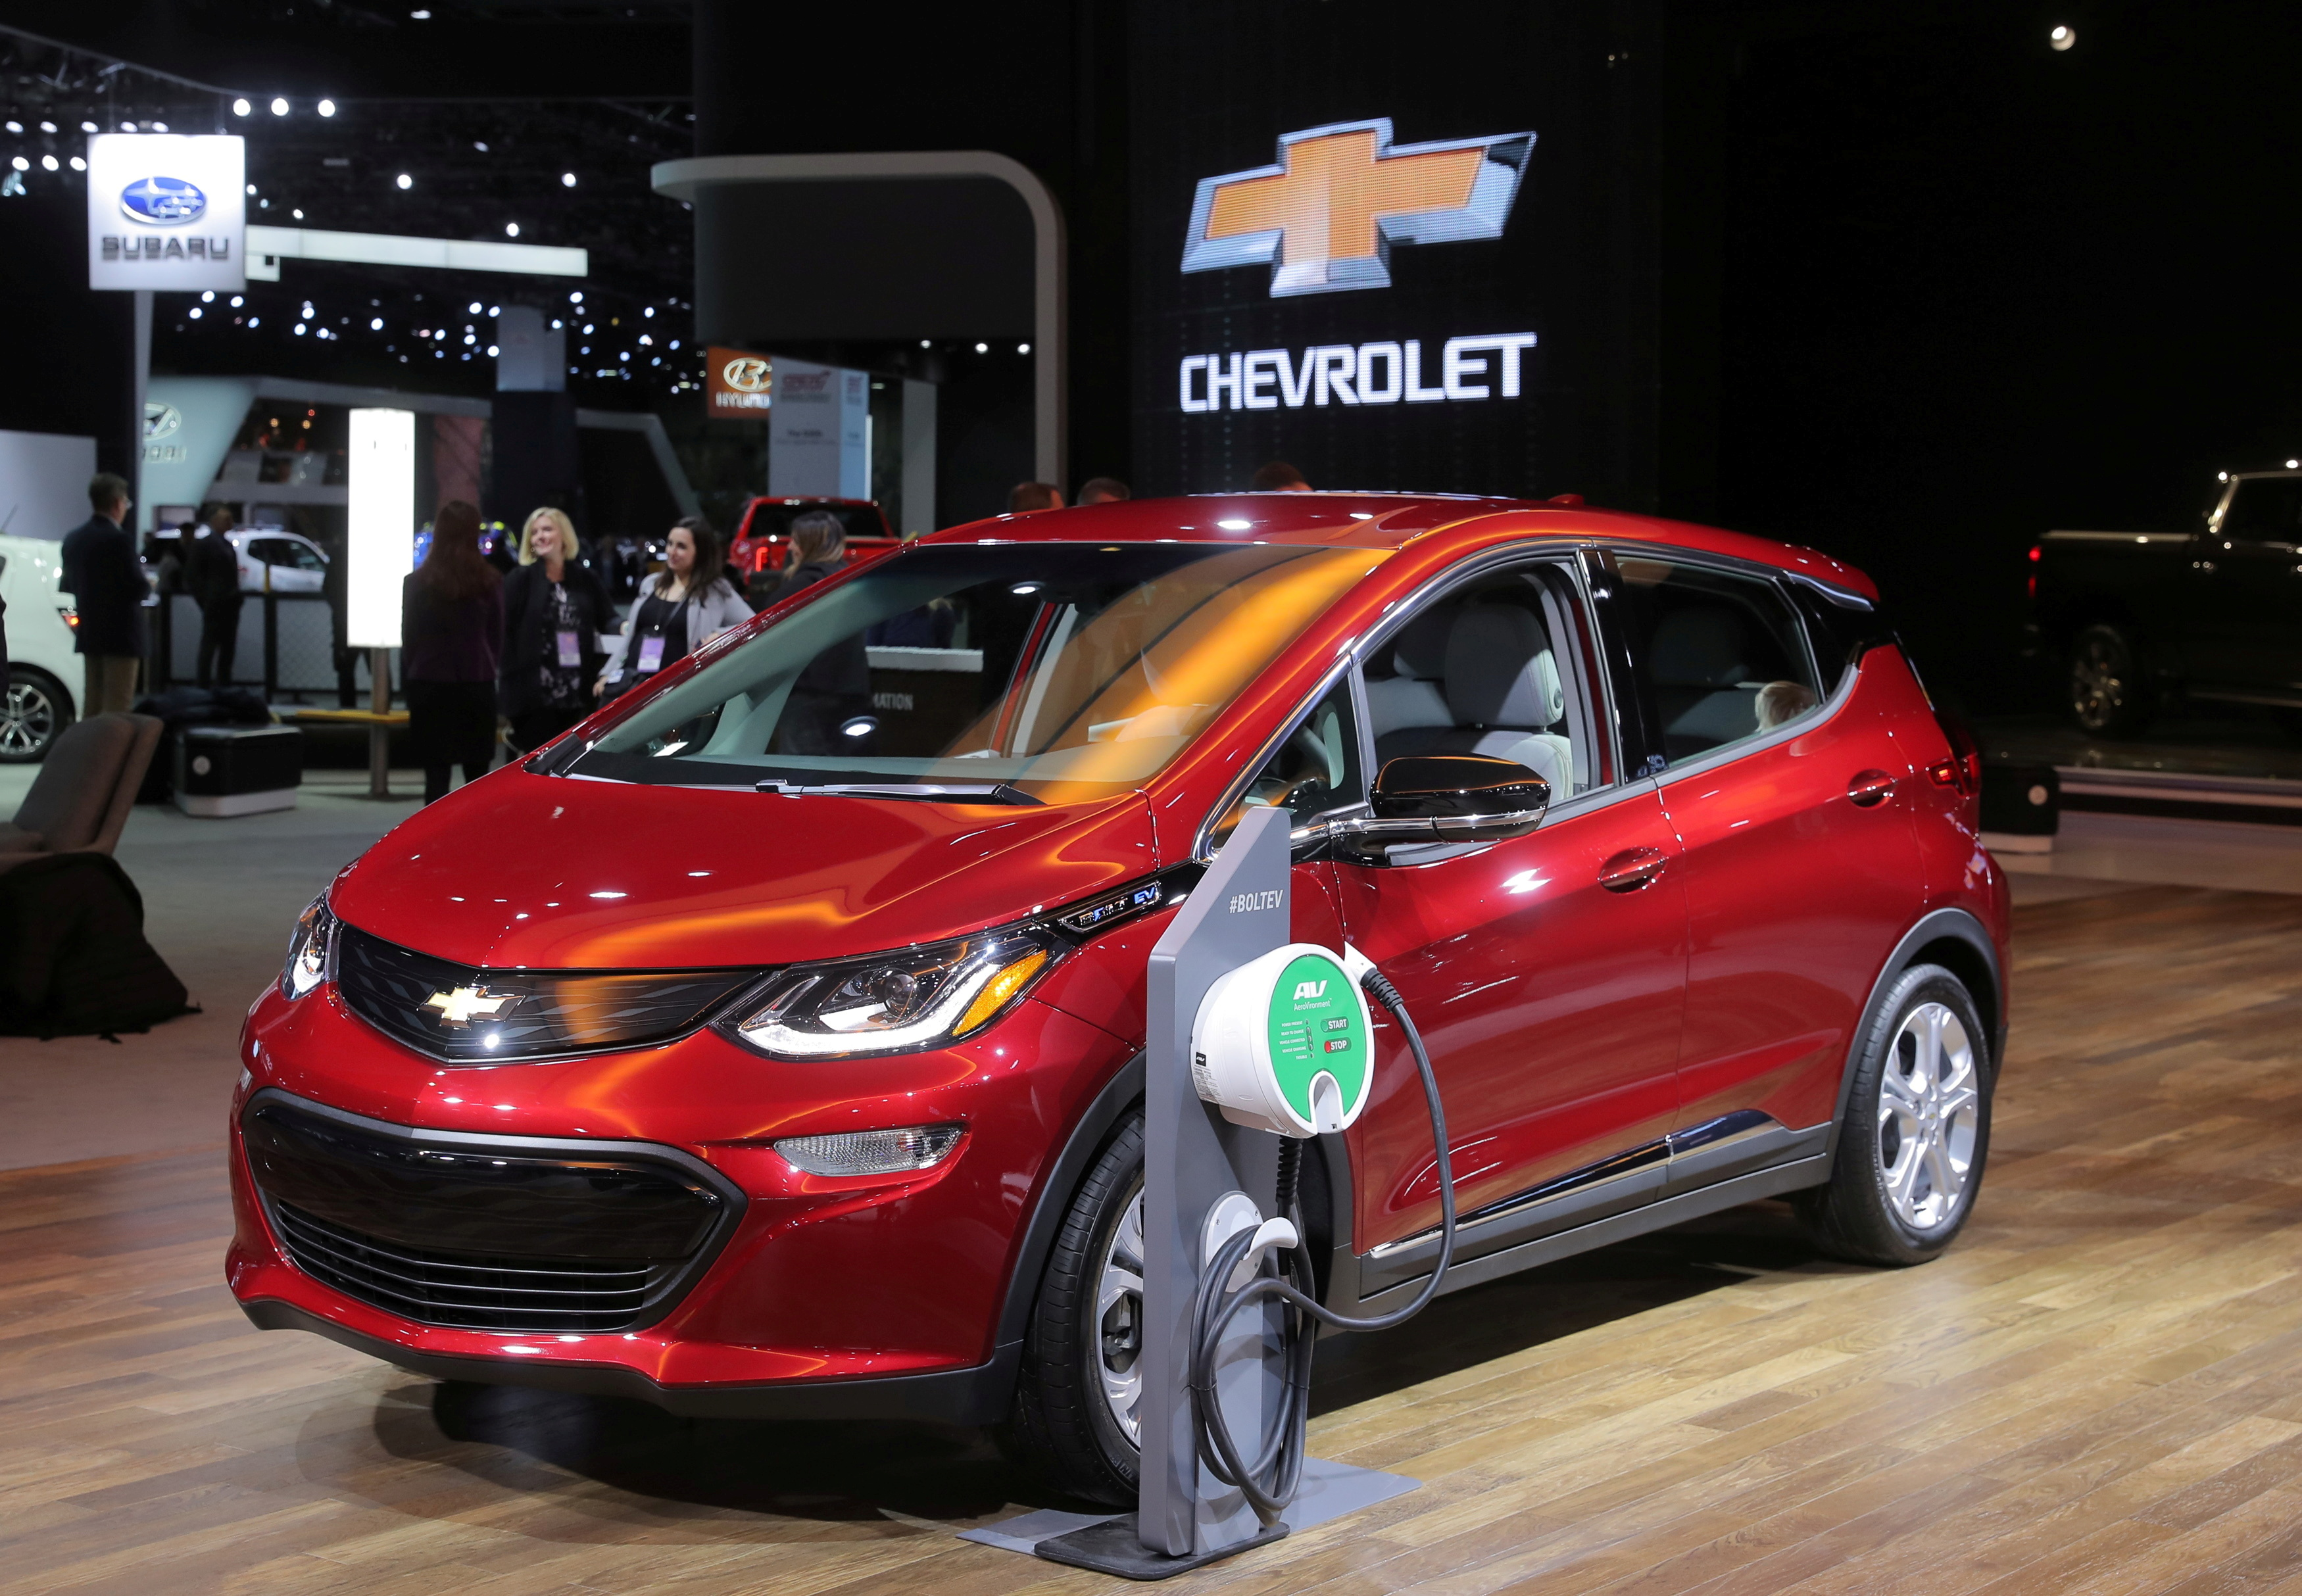 A 2019 Chevrolet Bolt plug-in electric vehicle is displayed at the North American International Auto Show in Detroit, Michigan, U.S., January 15, 2019. REUTERS/Rebecca Cook